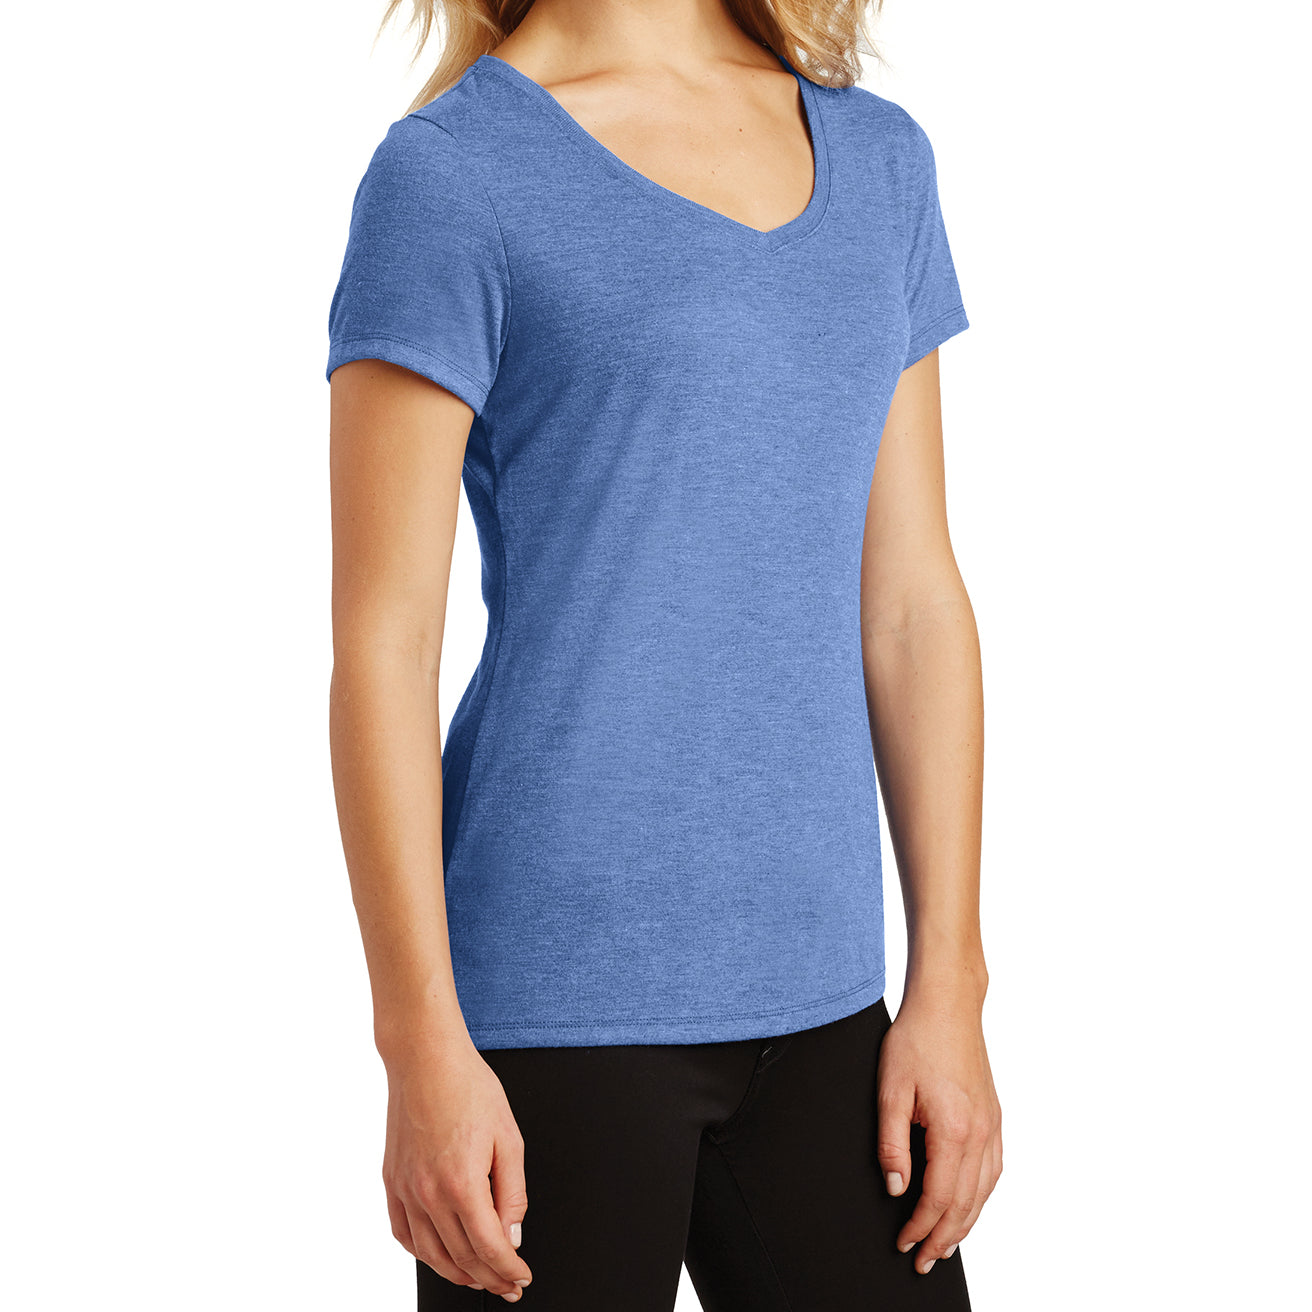 Women's Perfect Tri V-Neck Tee - Maritime Frost - Side